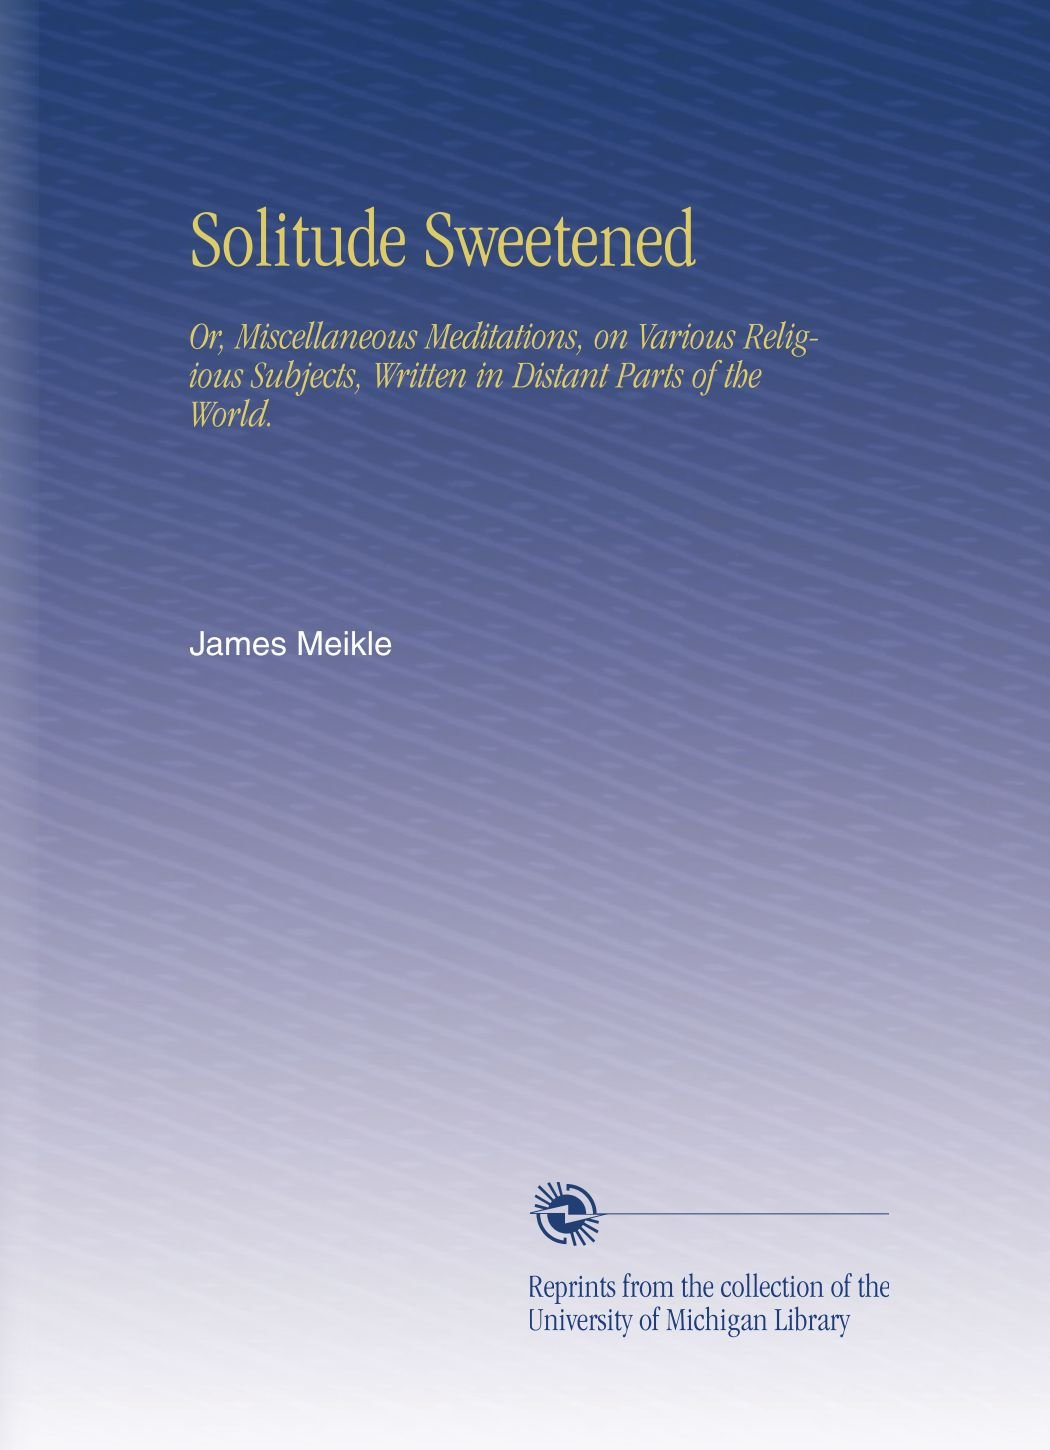 Download Solitude Sweetened: Or, Miscellaneous Meditations, on Various Religious Subjects, Written in Distant Parts of the World. pdf